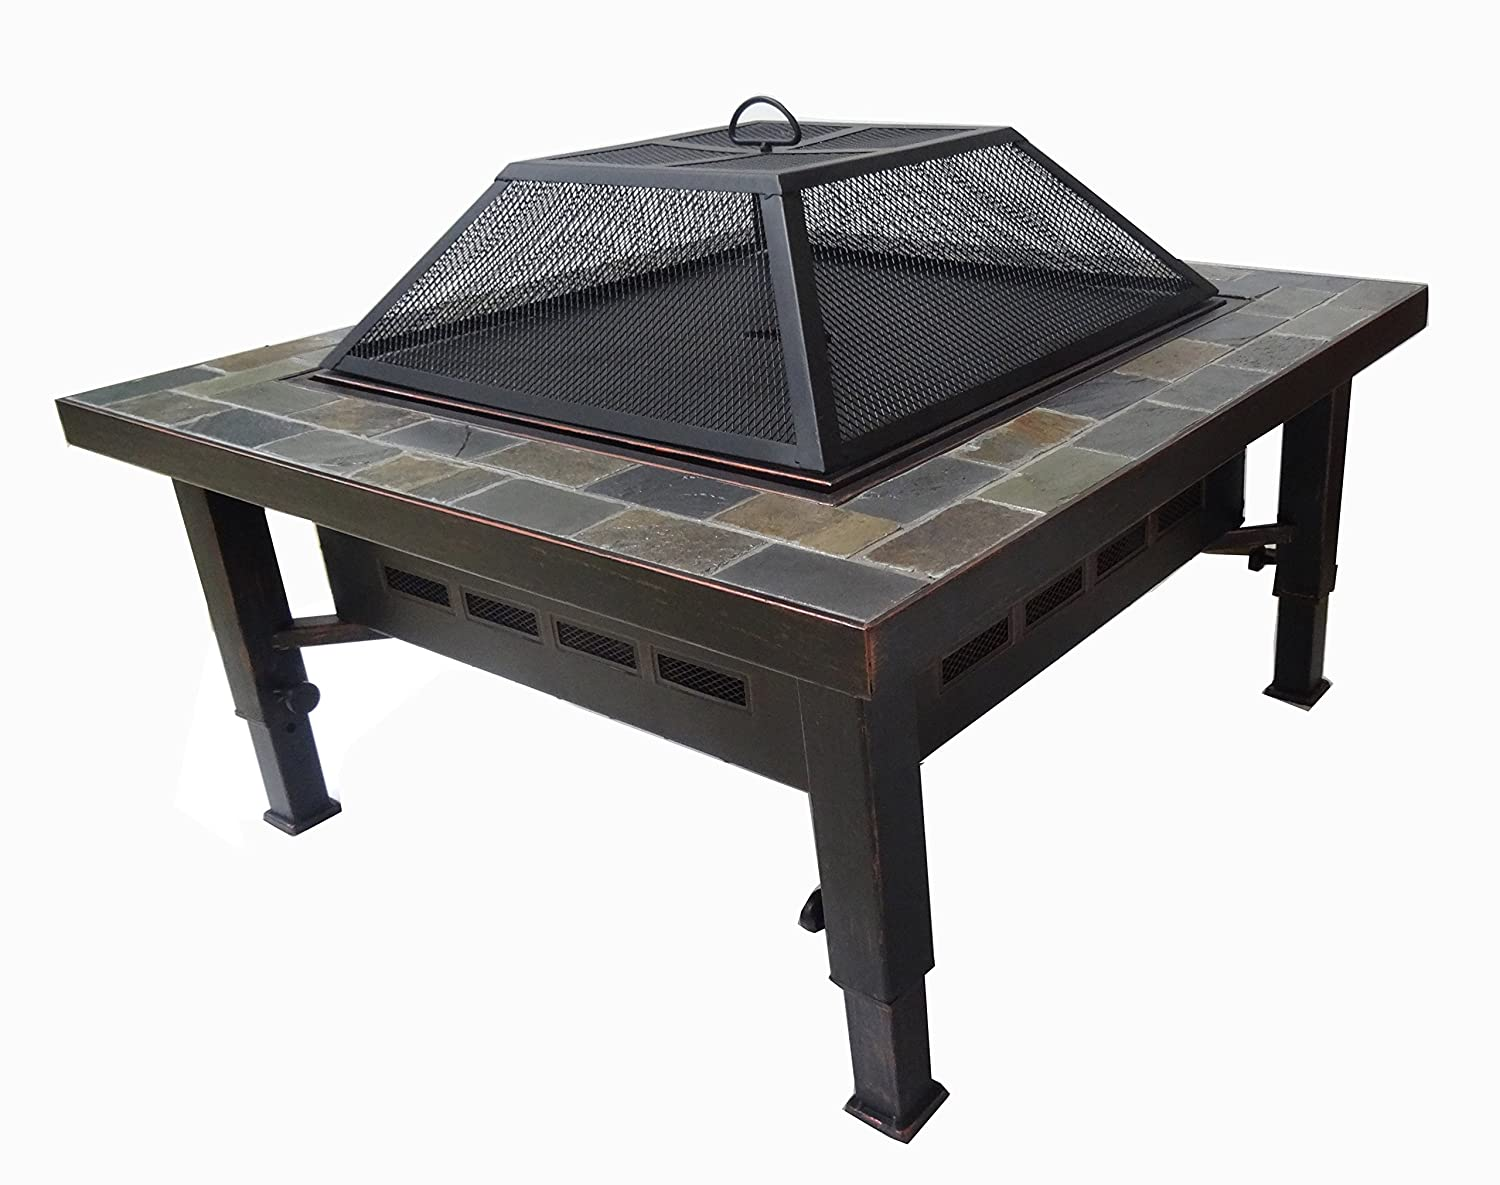 Global Outdoors 34-in Adjustable Leg Square Slate Top Fire Pit with Spark Screen, Weather Resistant Cover and Safety Poker Global Outdoors Inc